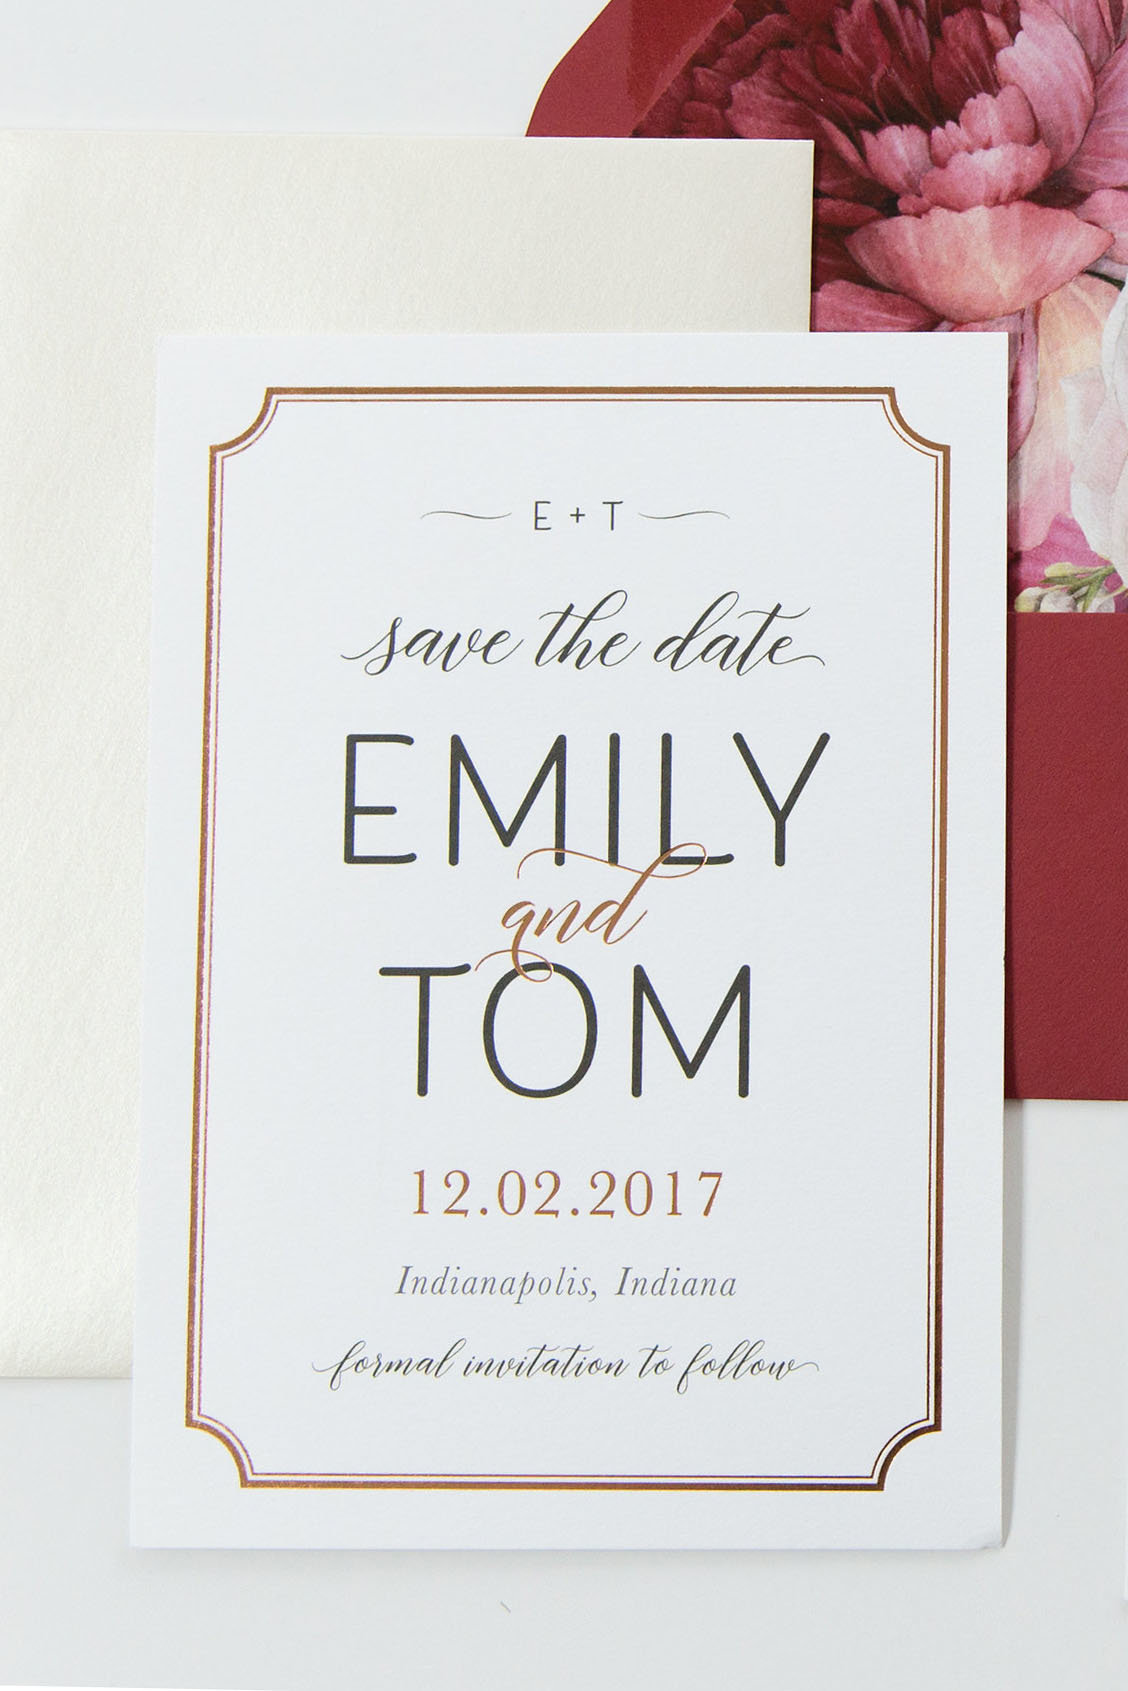 ET_SaveTheDate